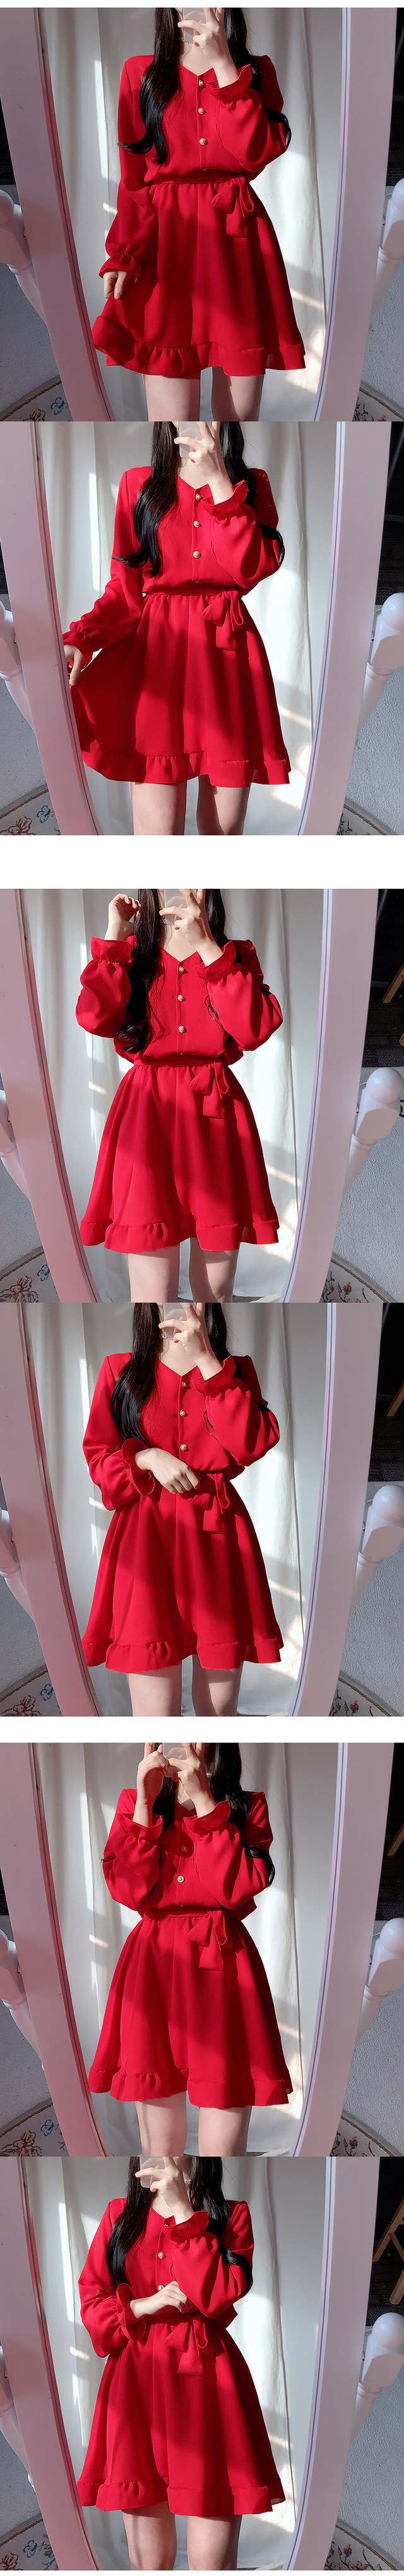 Self-made ♥ Ruby pearl ruffle ops / Ivory color added ♥